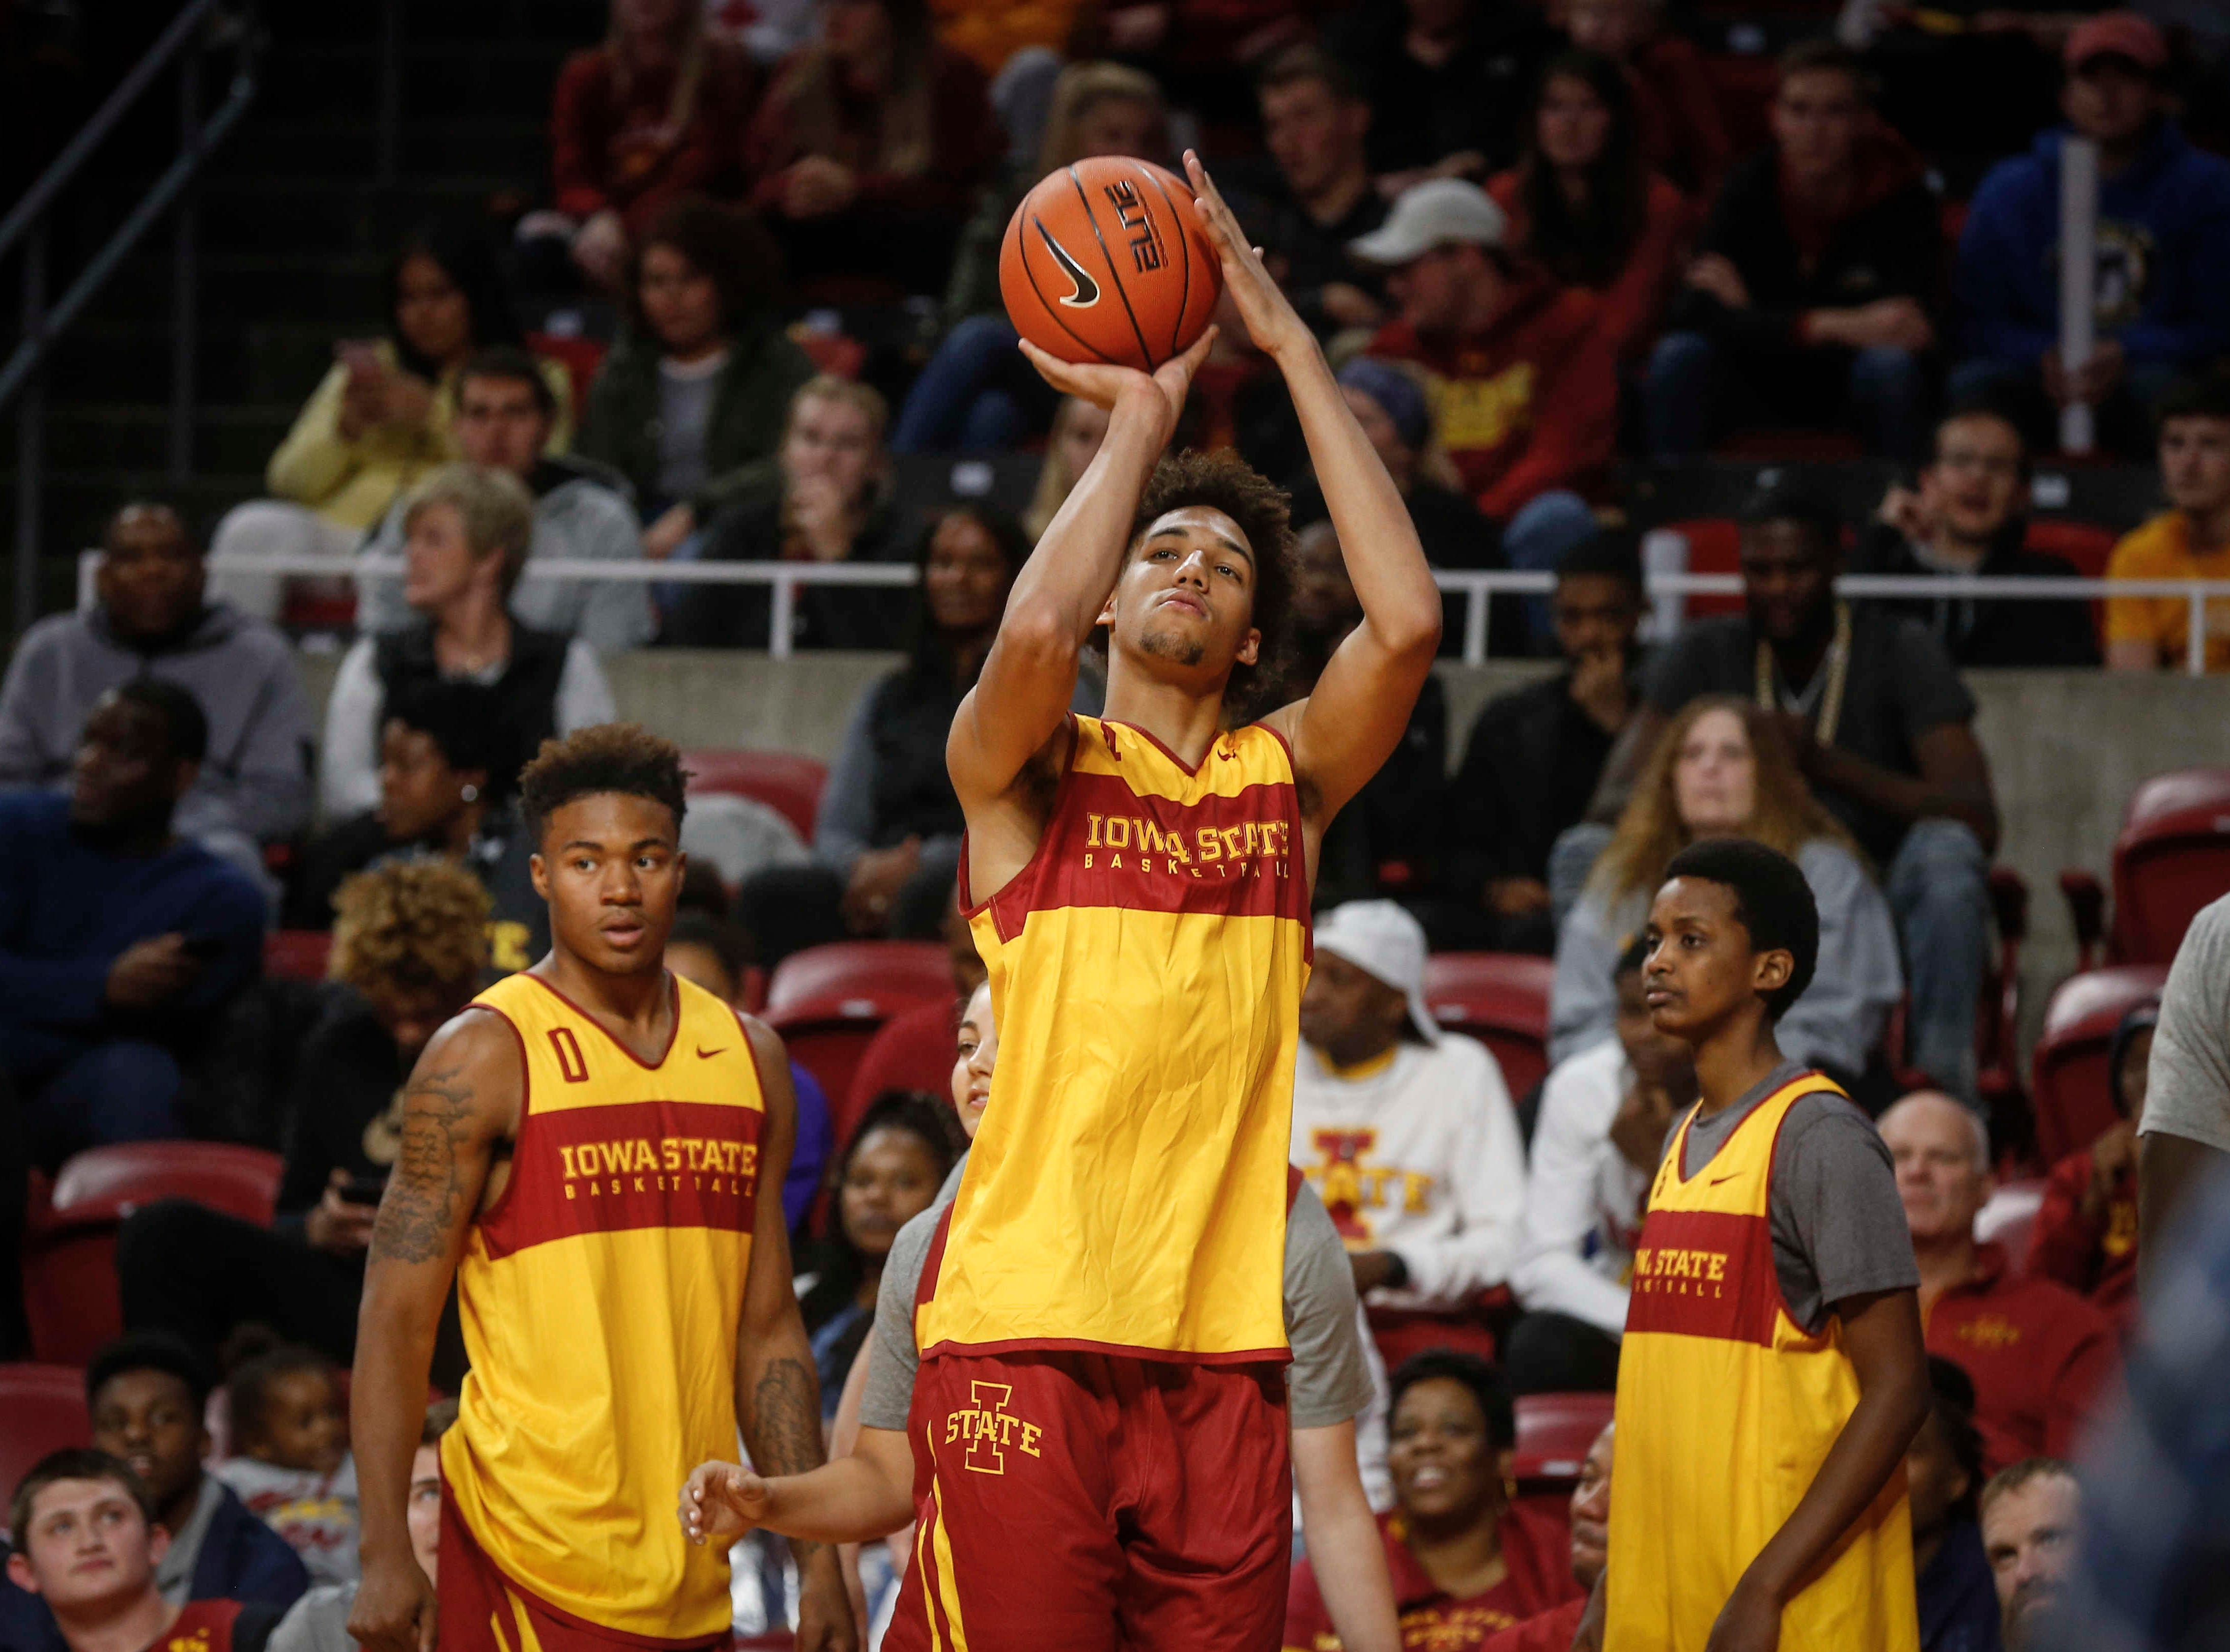 George Conditt IV lines up a shot from behind the three point line during Hilton Madness at Hilton Coliseum in Ames on Friday, Oct. 12, 2018.